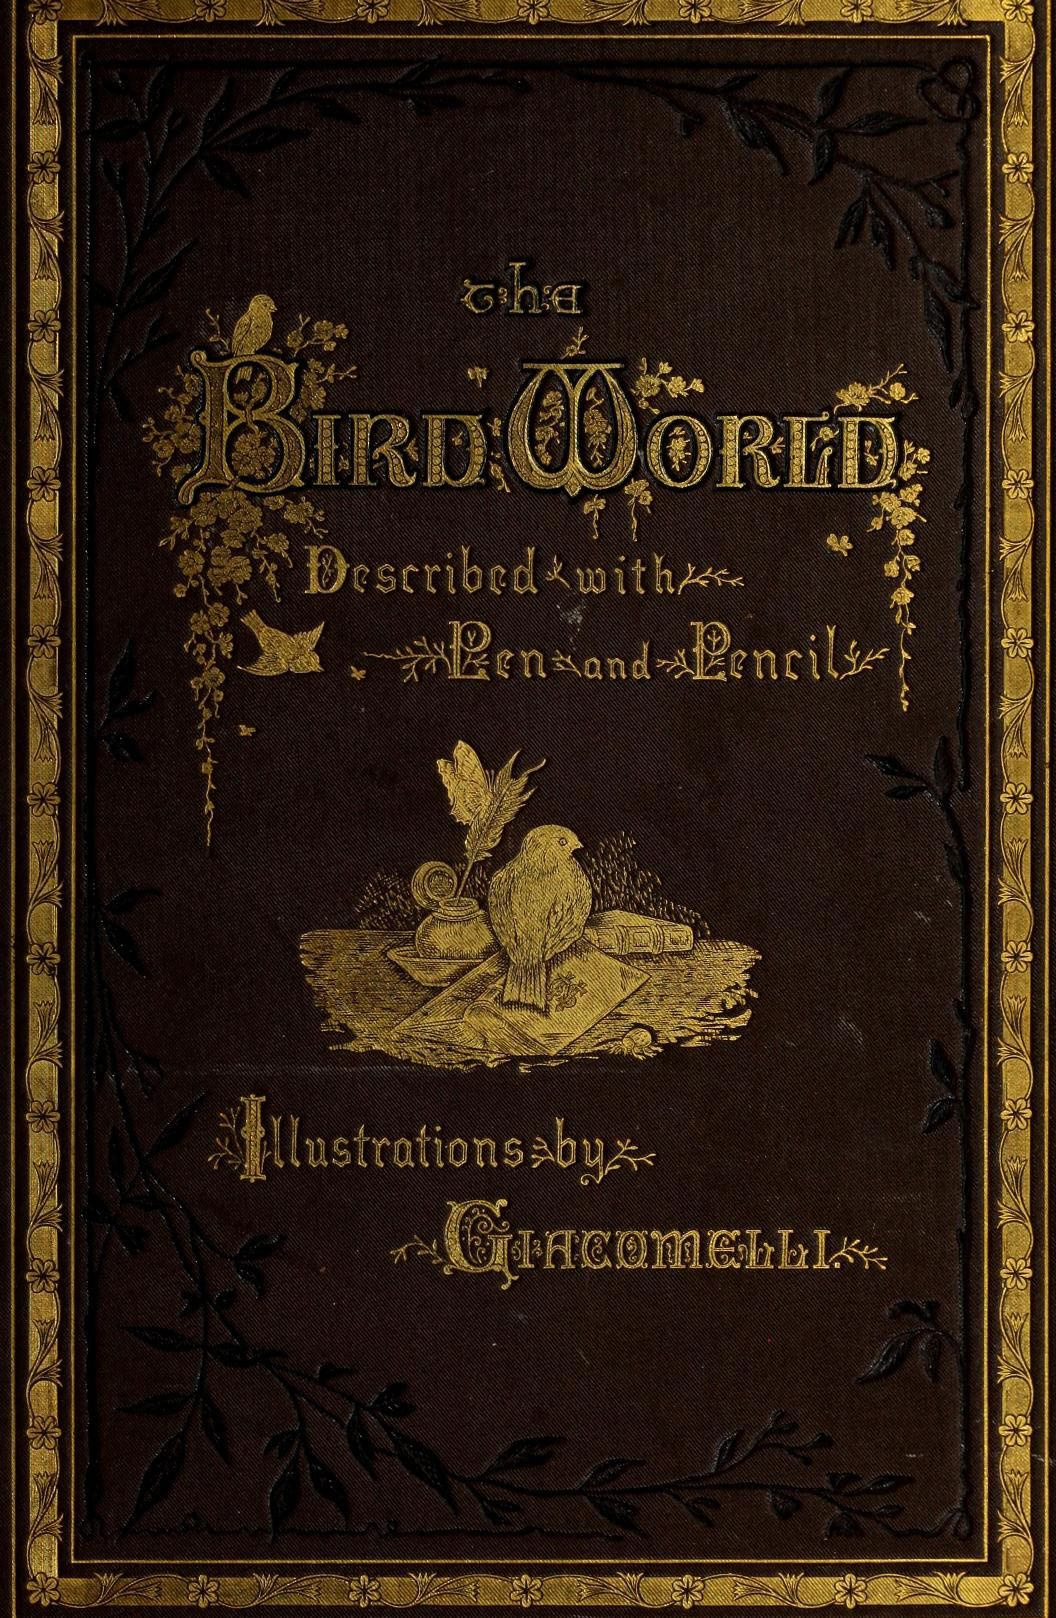 The bird world : described with pen and pencil